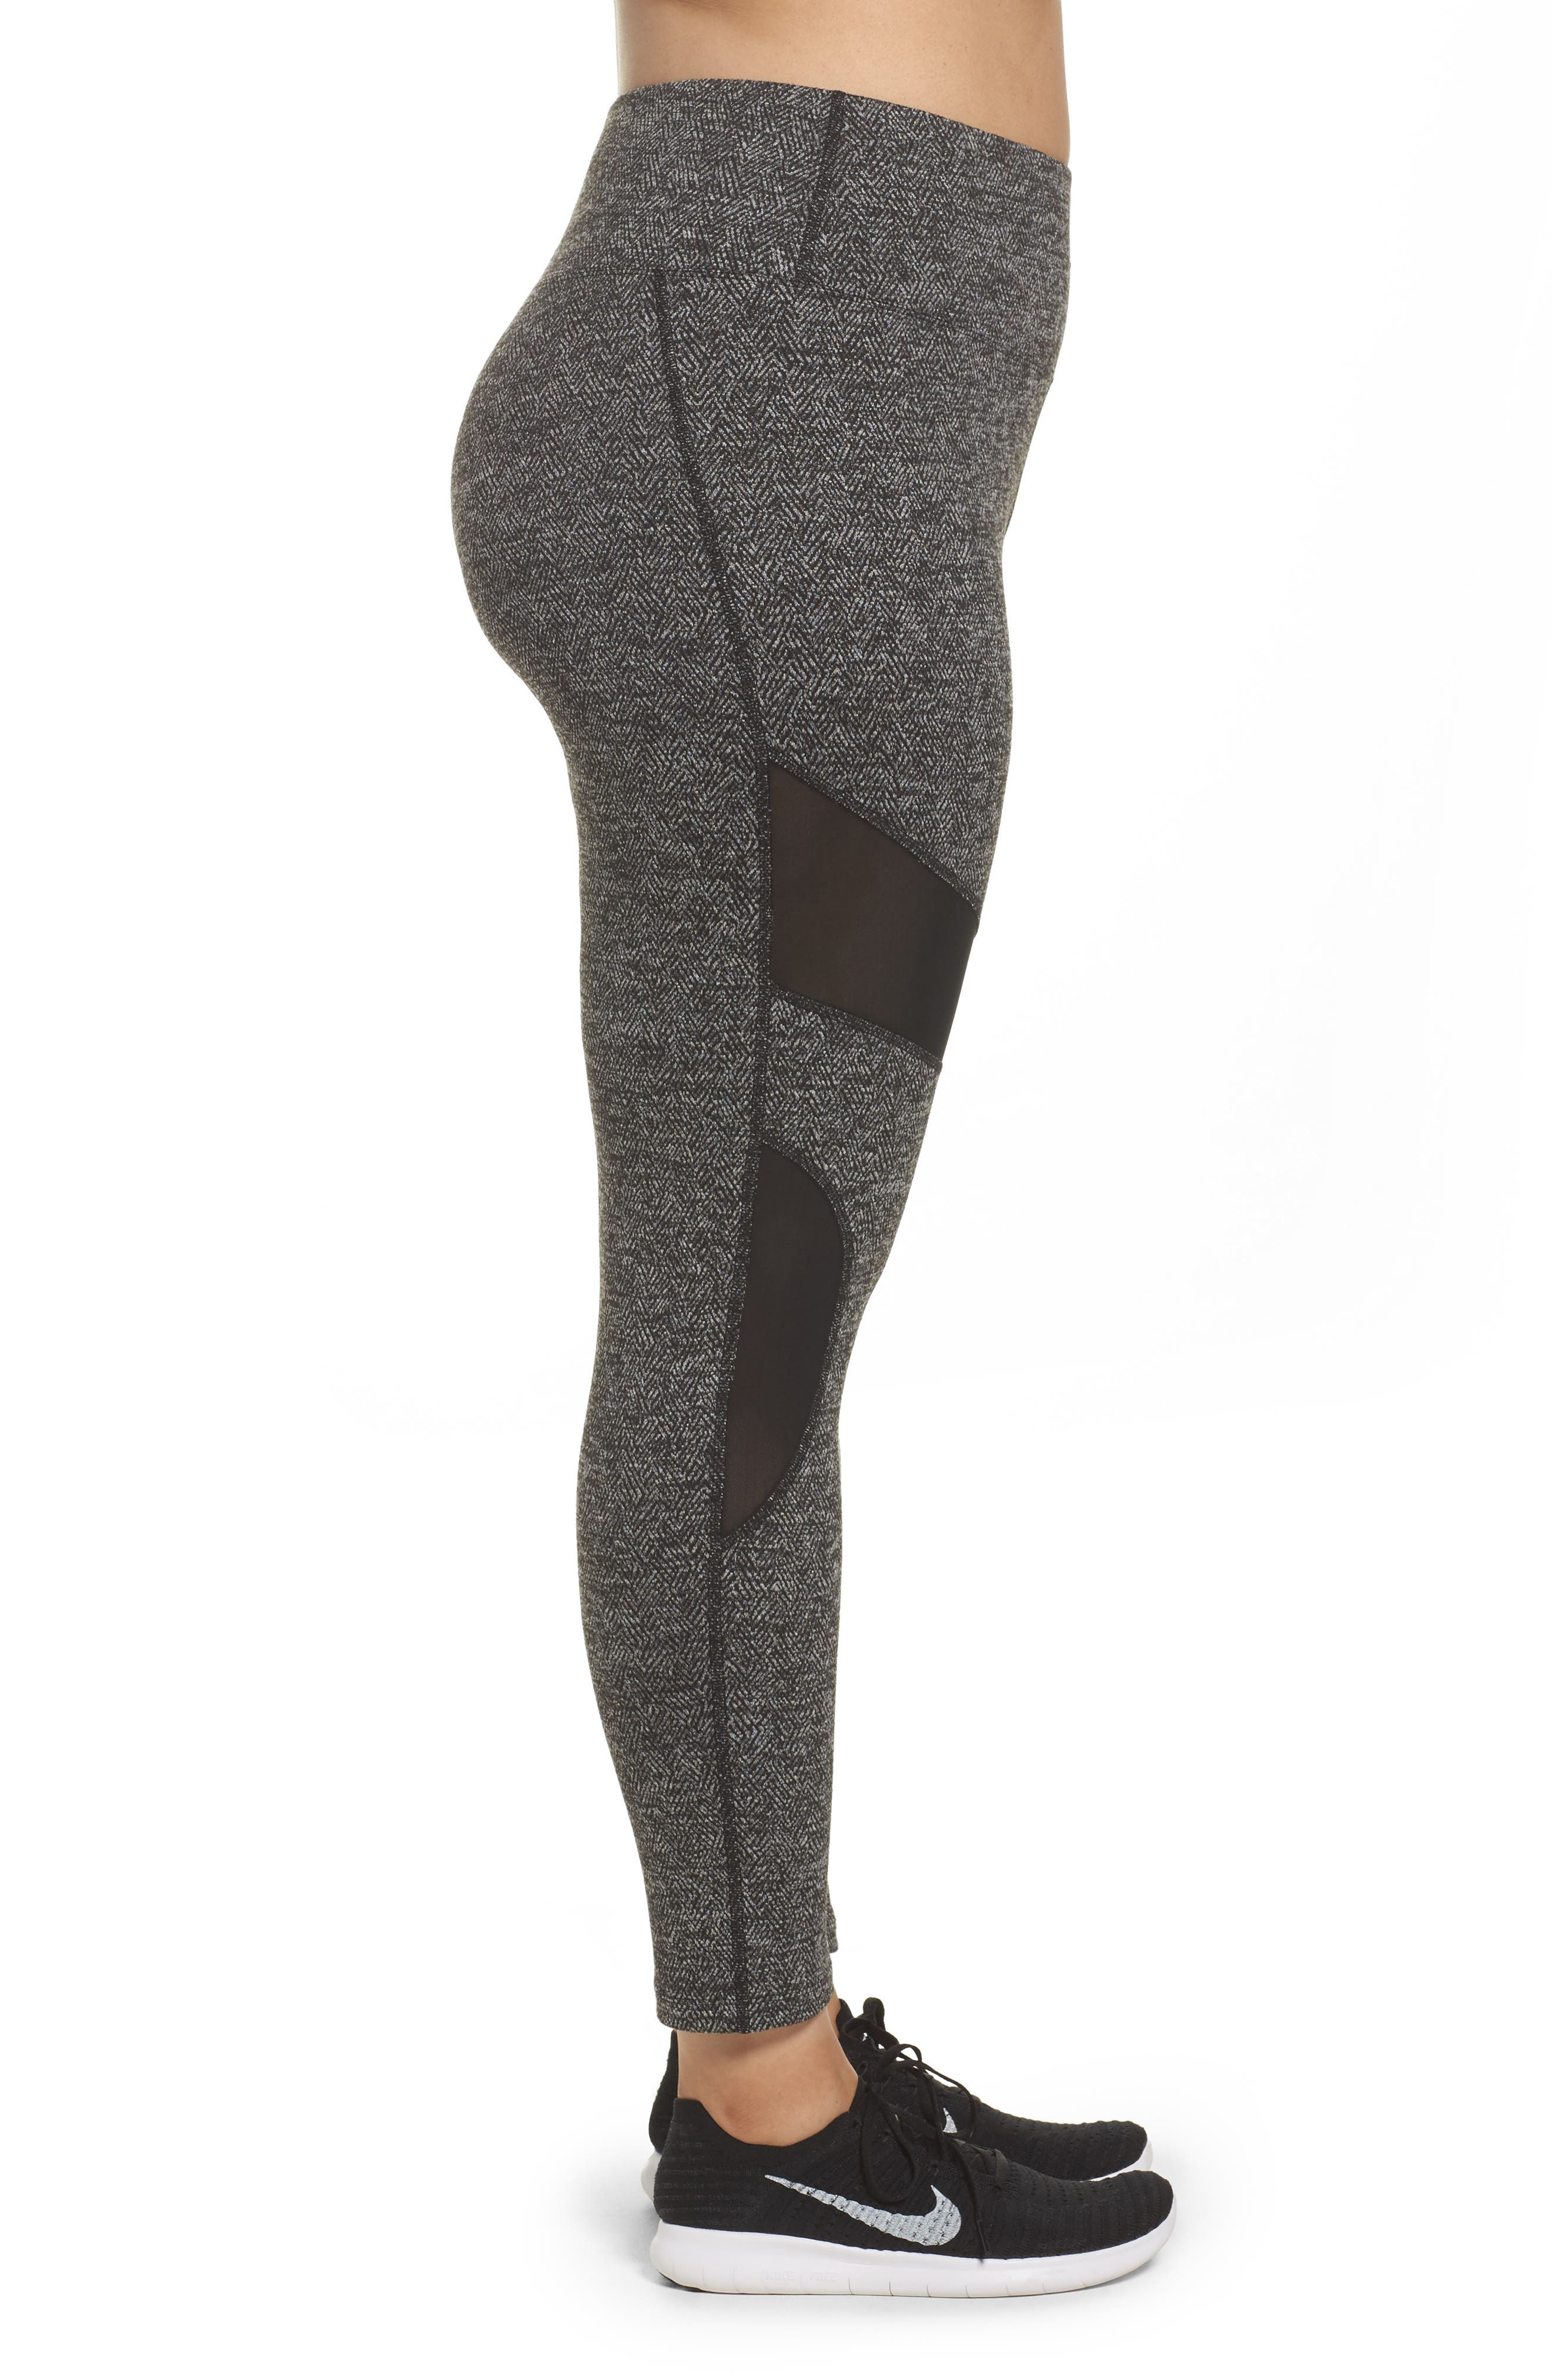 Optic High Waist Leggings,                             Alternate thumbnail 3, color,                             Black